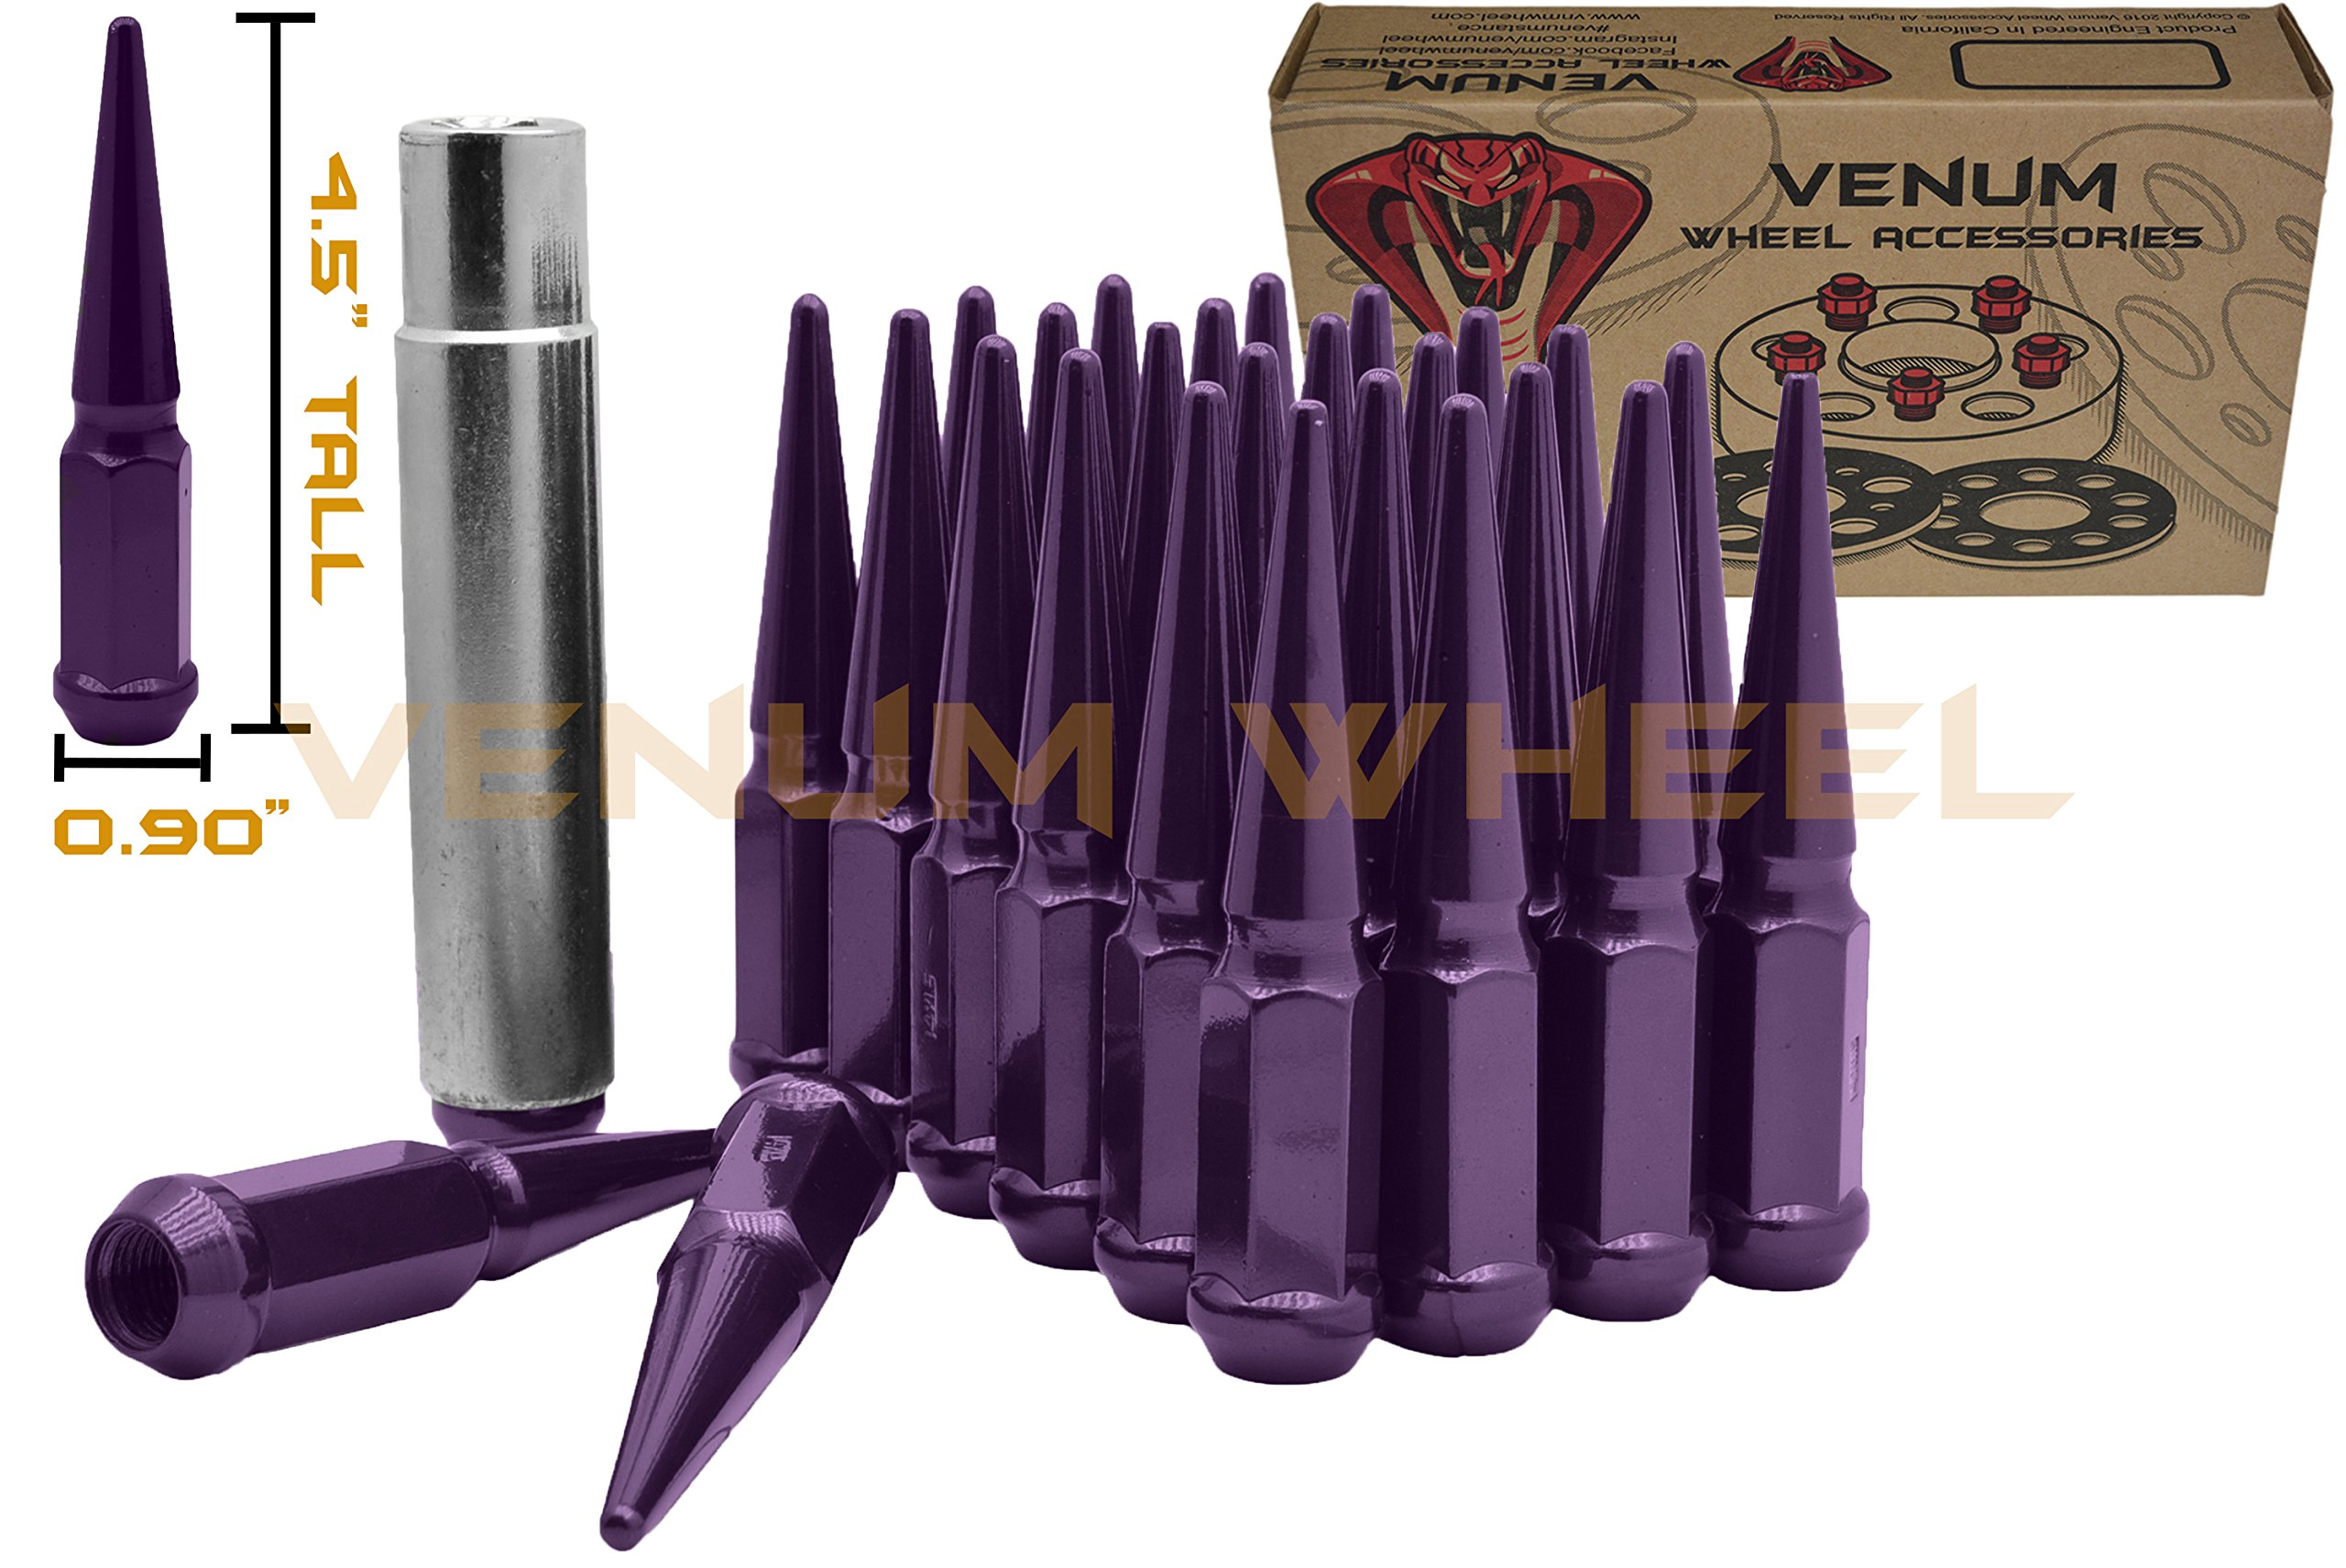 32 Pc Purple M14x1.5 Thread 4.5'' Tall Spike Lug Nuts Aftermarket Wheels Acorn Heavy Duty USA Made Ford Dodge Chevrolet   Lugs Include Removal Locking Security Socket by Venum wheel accessories